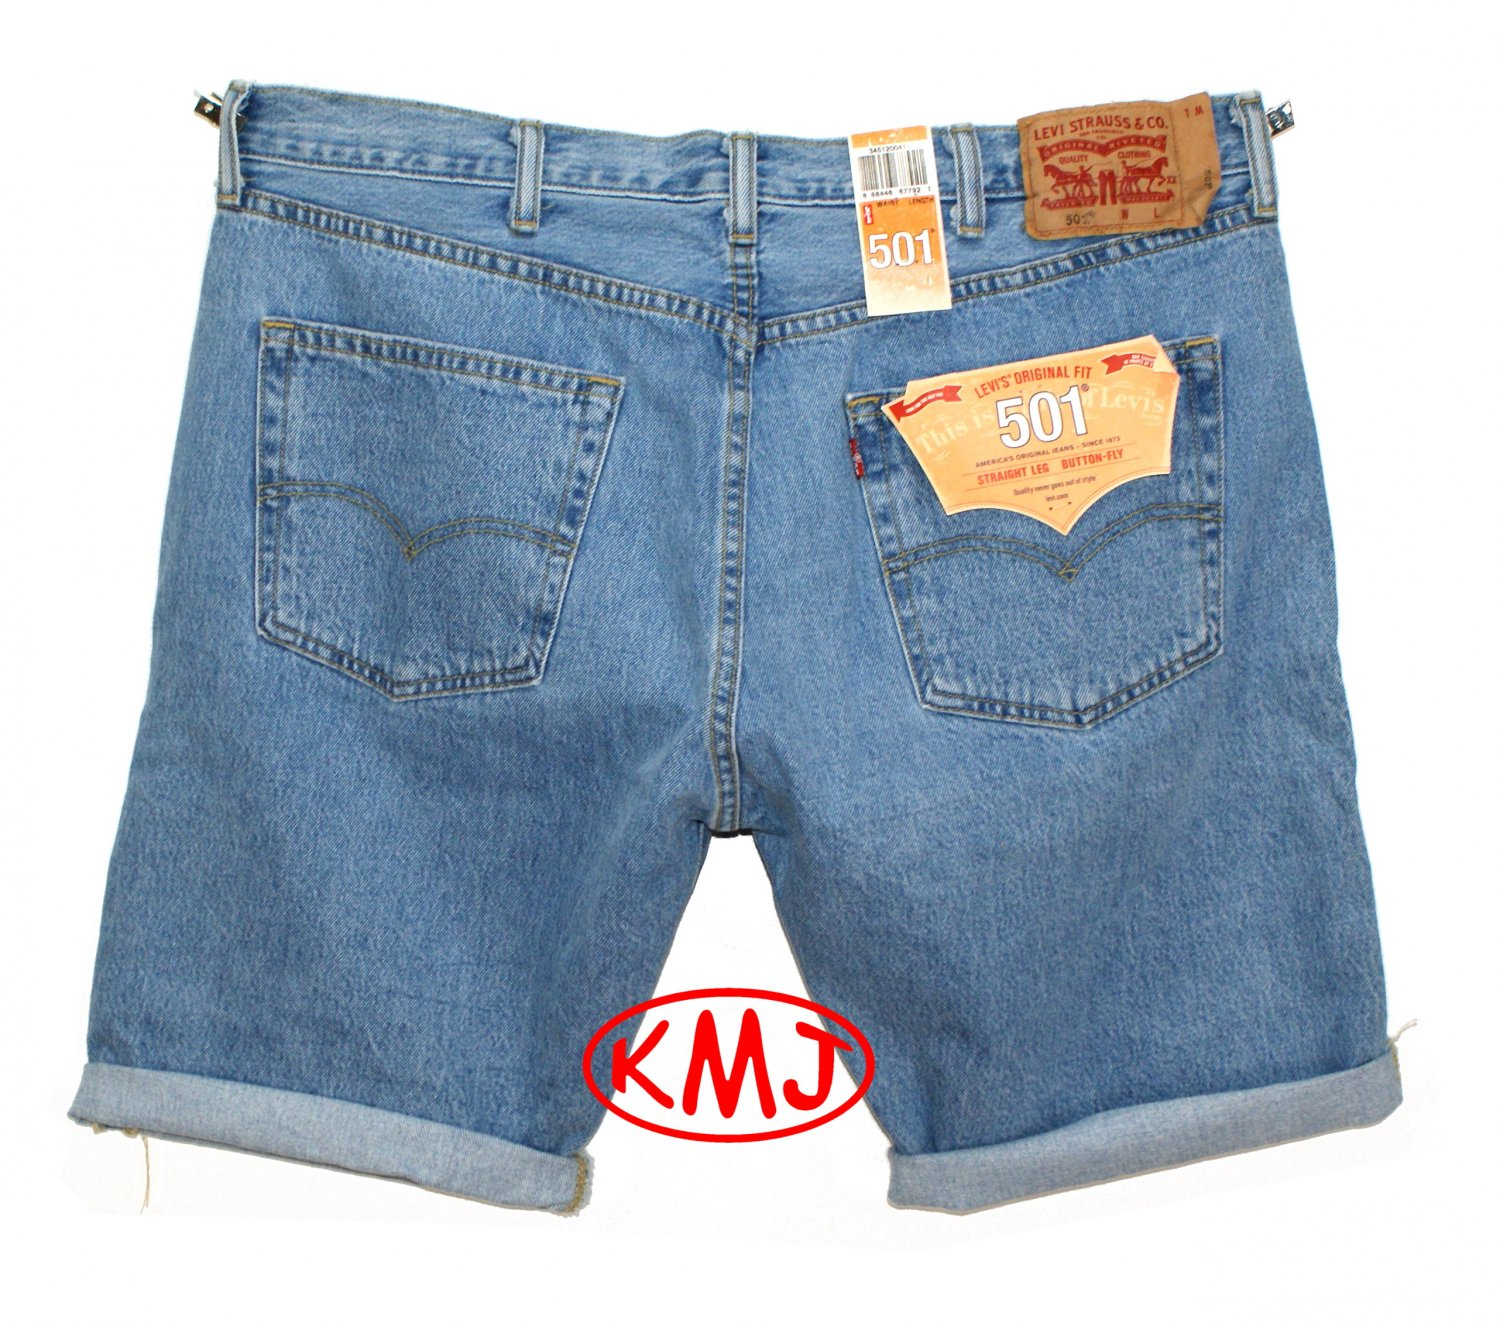 Brand New LEVI'S CLASSIC 501 BUTTON-FLY PADRE CUTOFF MEDIUM STONEWASH BLUE DENIM SHORTS in size W40